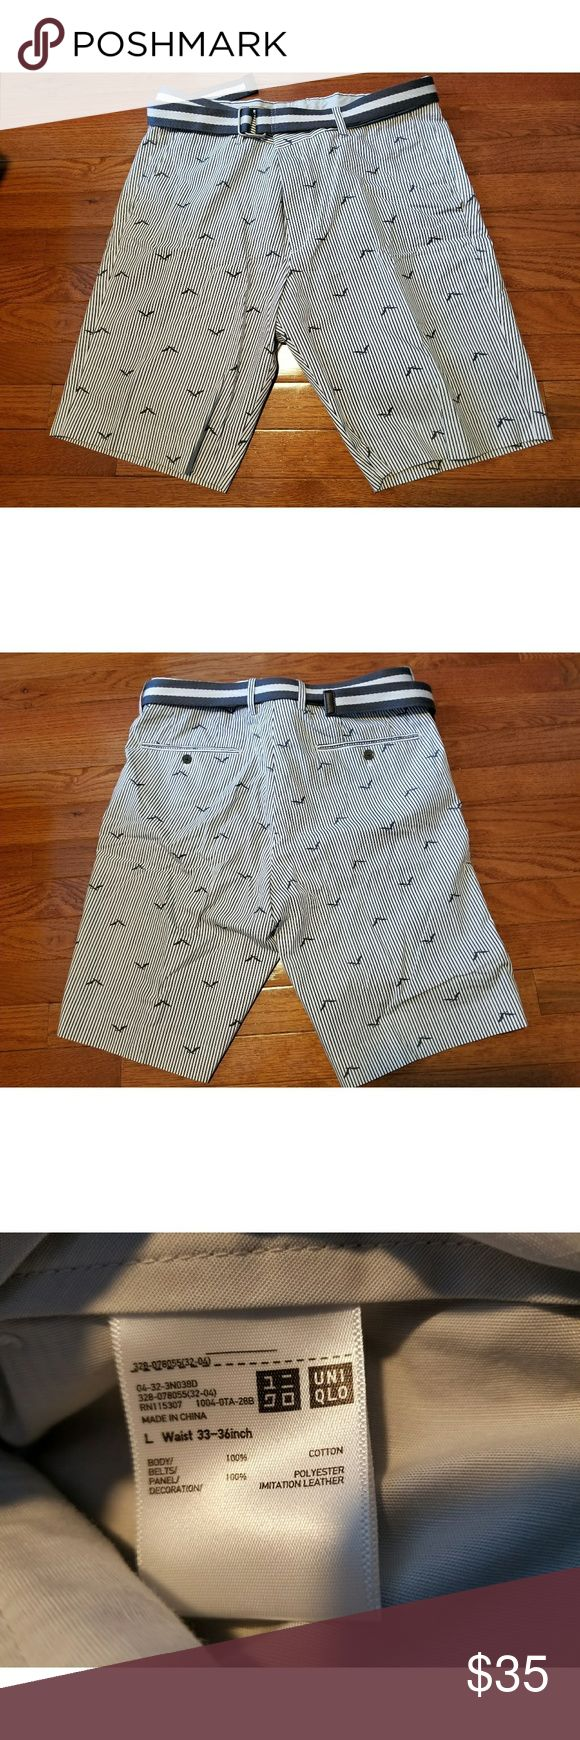 Uniqlo Shorts w/ belt In great condition! Comes with matching belt! Perfect for Spring! Uniqlo Shorts